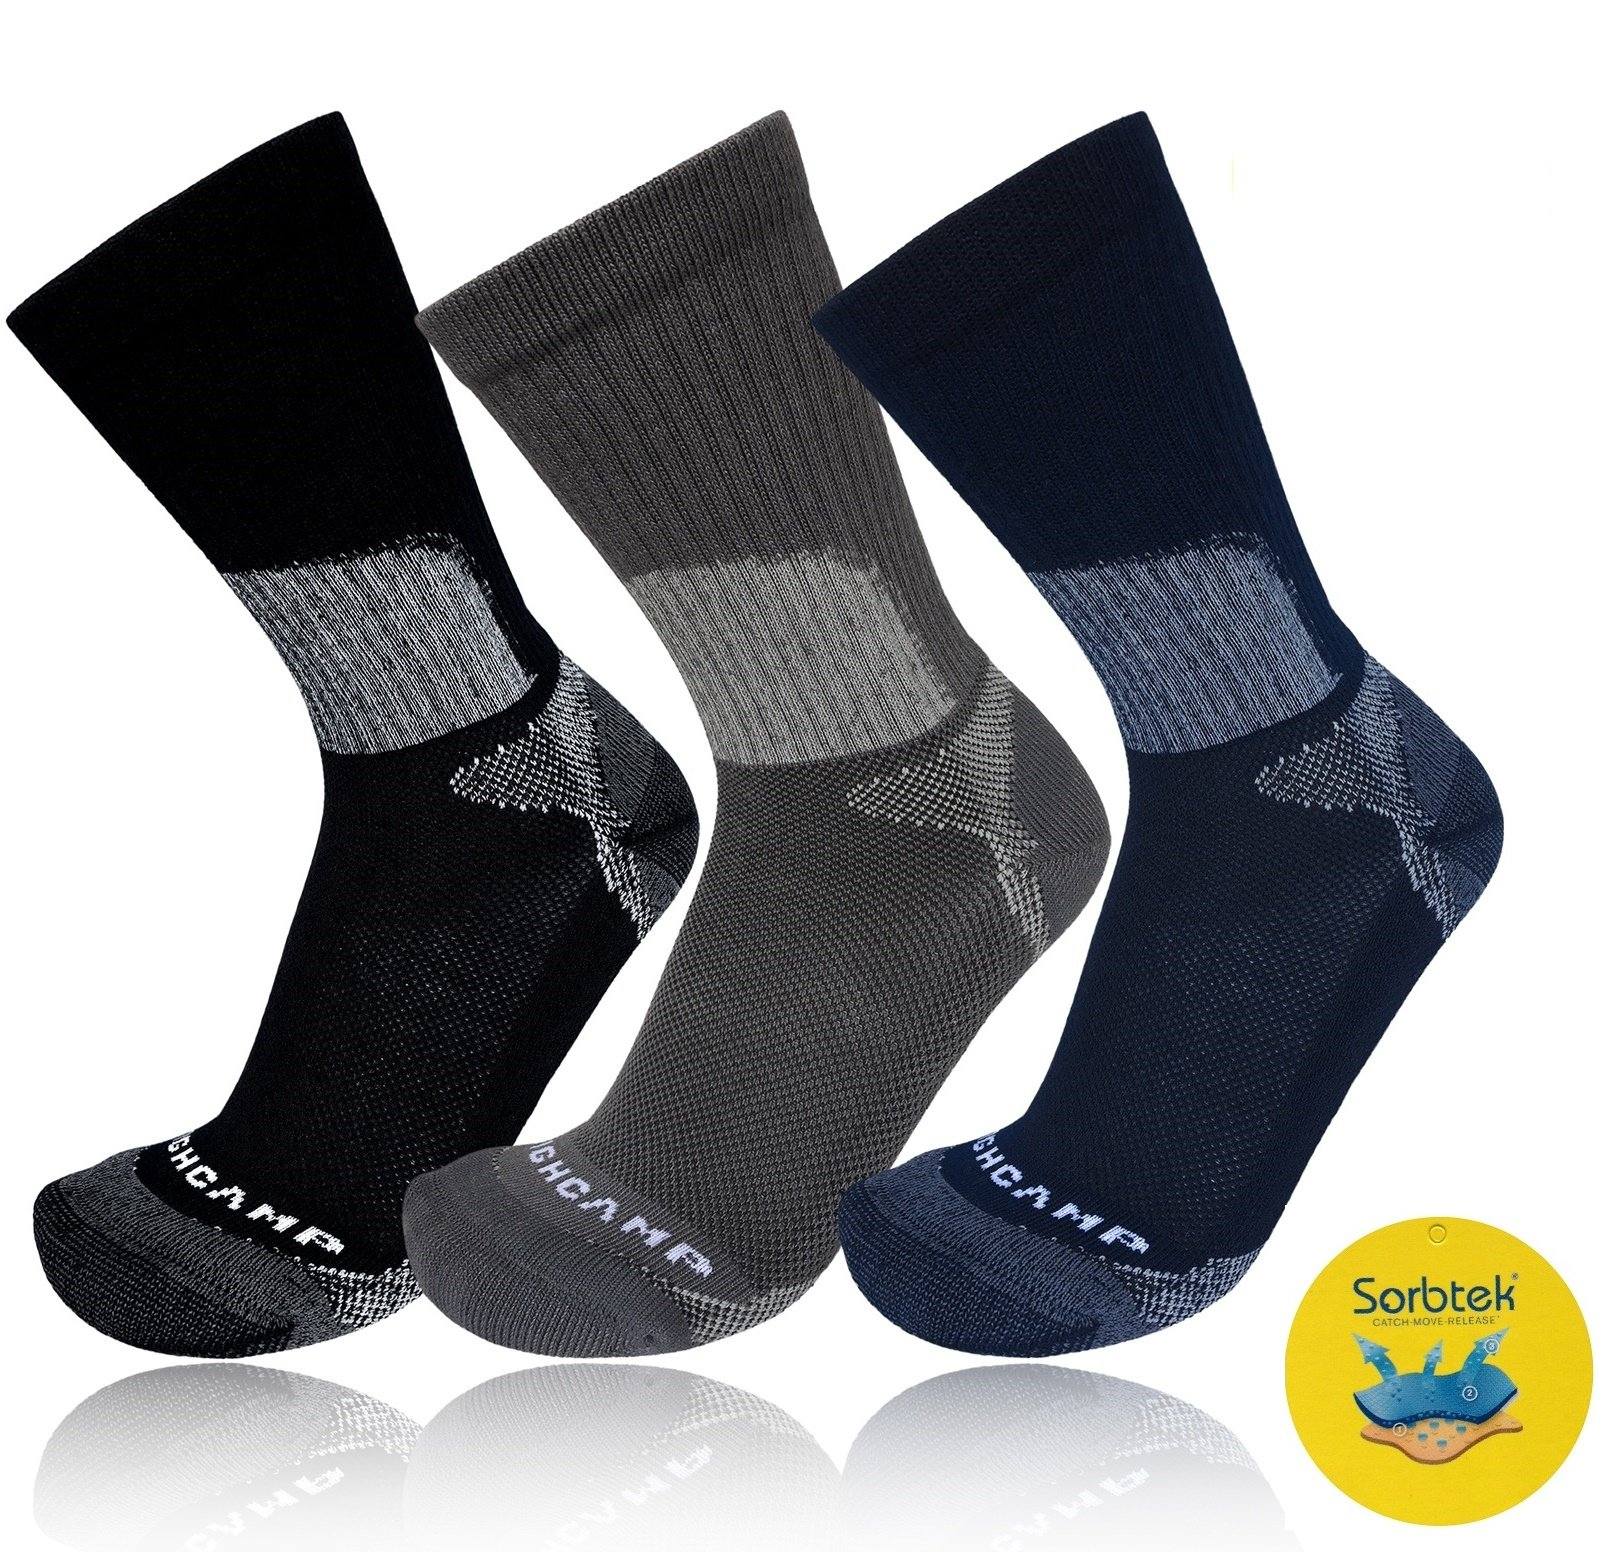 Highcamp Sorbtek Athletic Socks ASSORTED - 3PK- L/XL